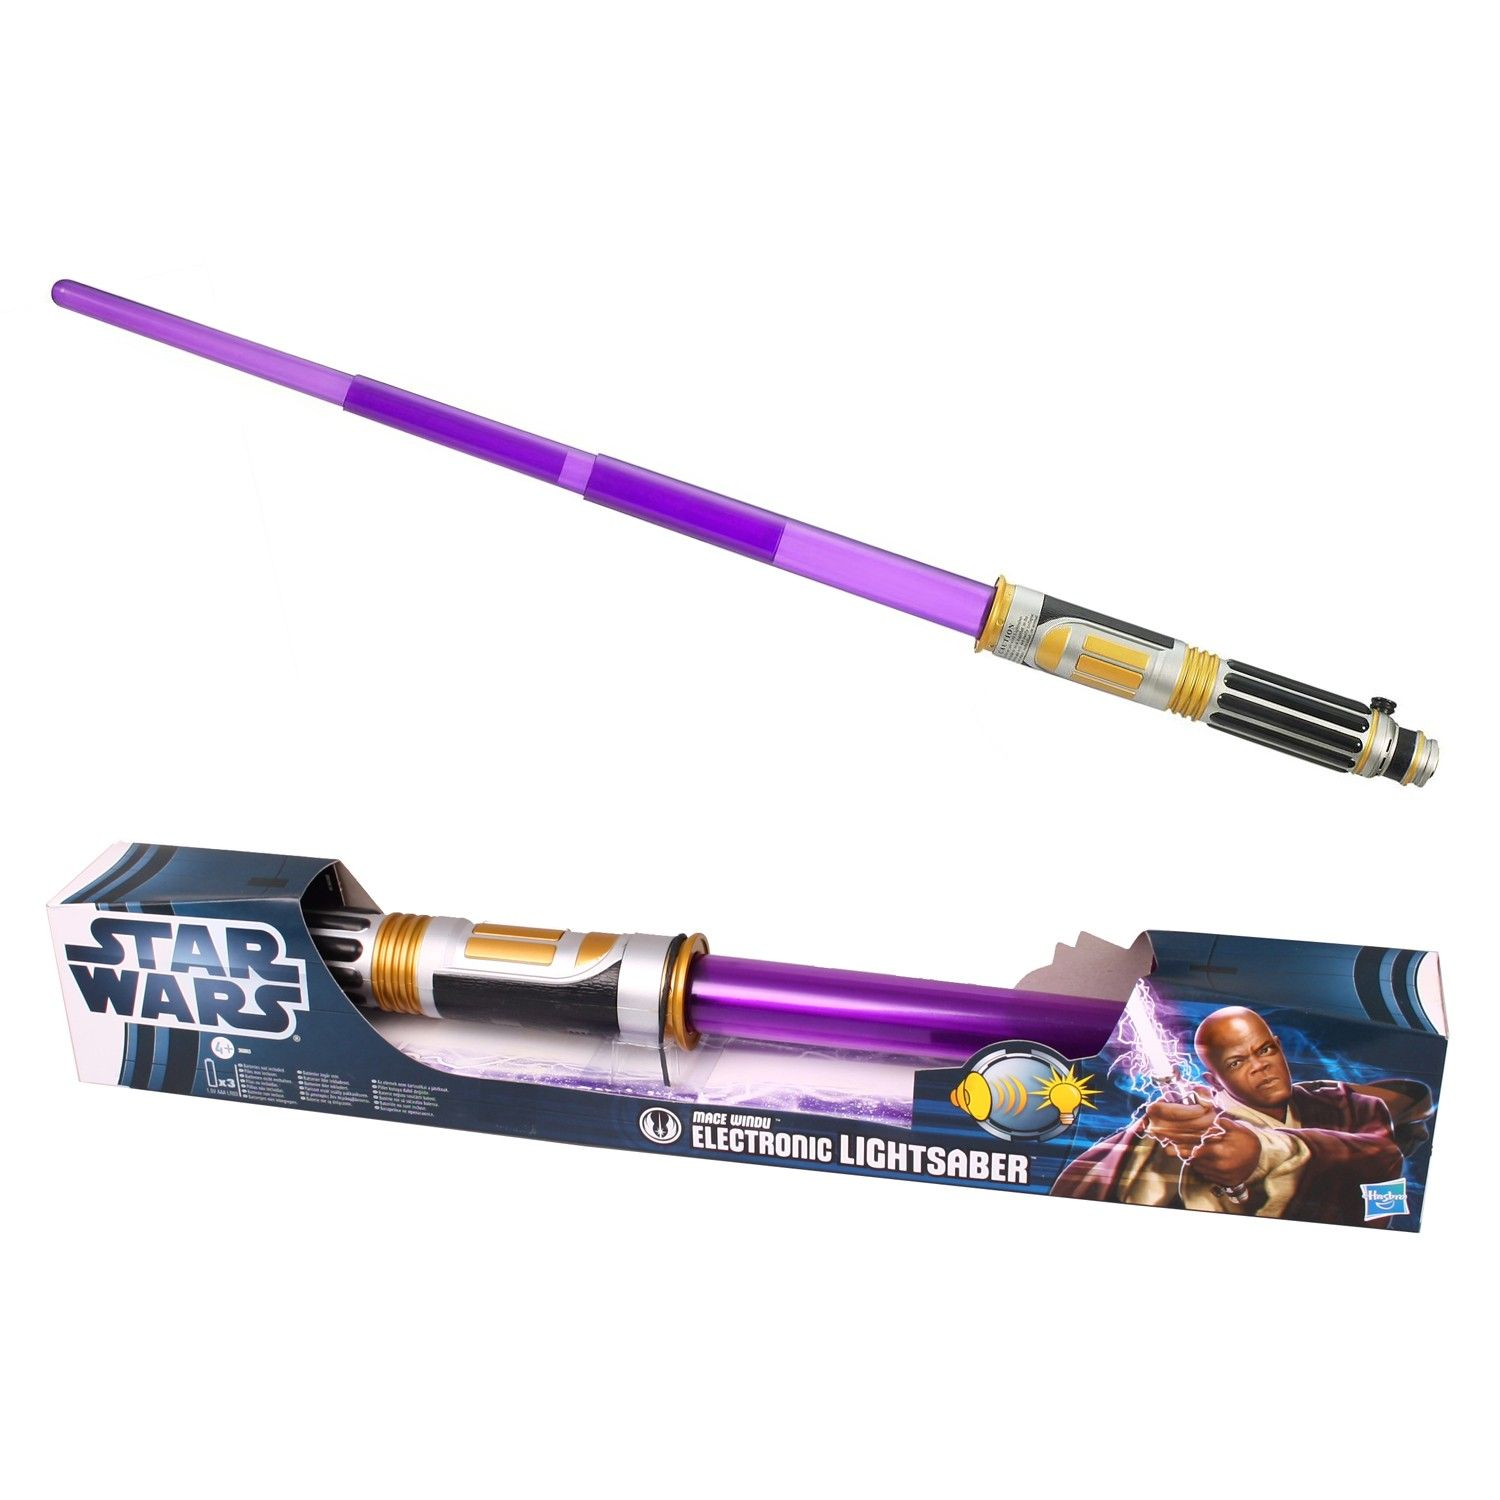 Revenge Of The Sith Mace Windu Electronic Lightsaber Action Toy Figures Toys Games Star Wars Action Toy Figures Statues Maquettes Busts